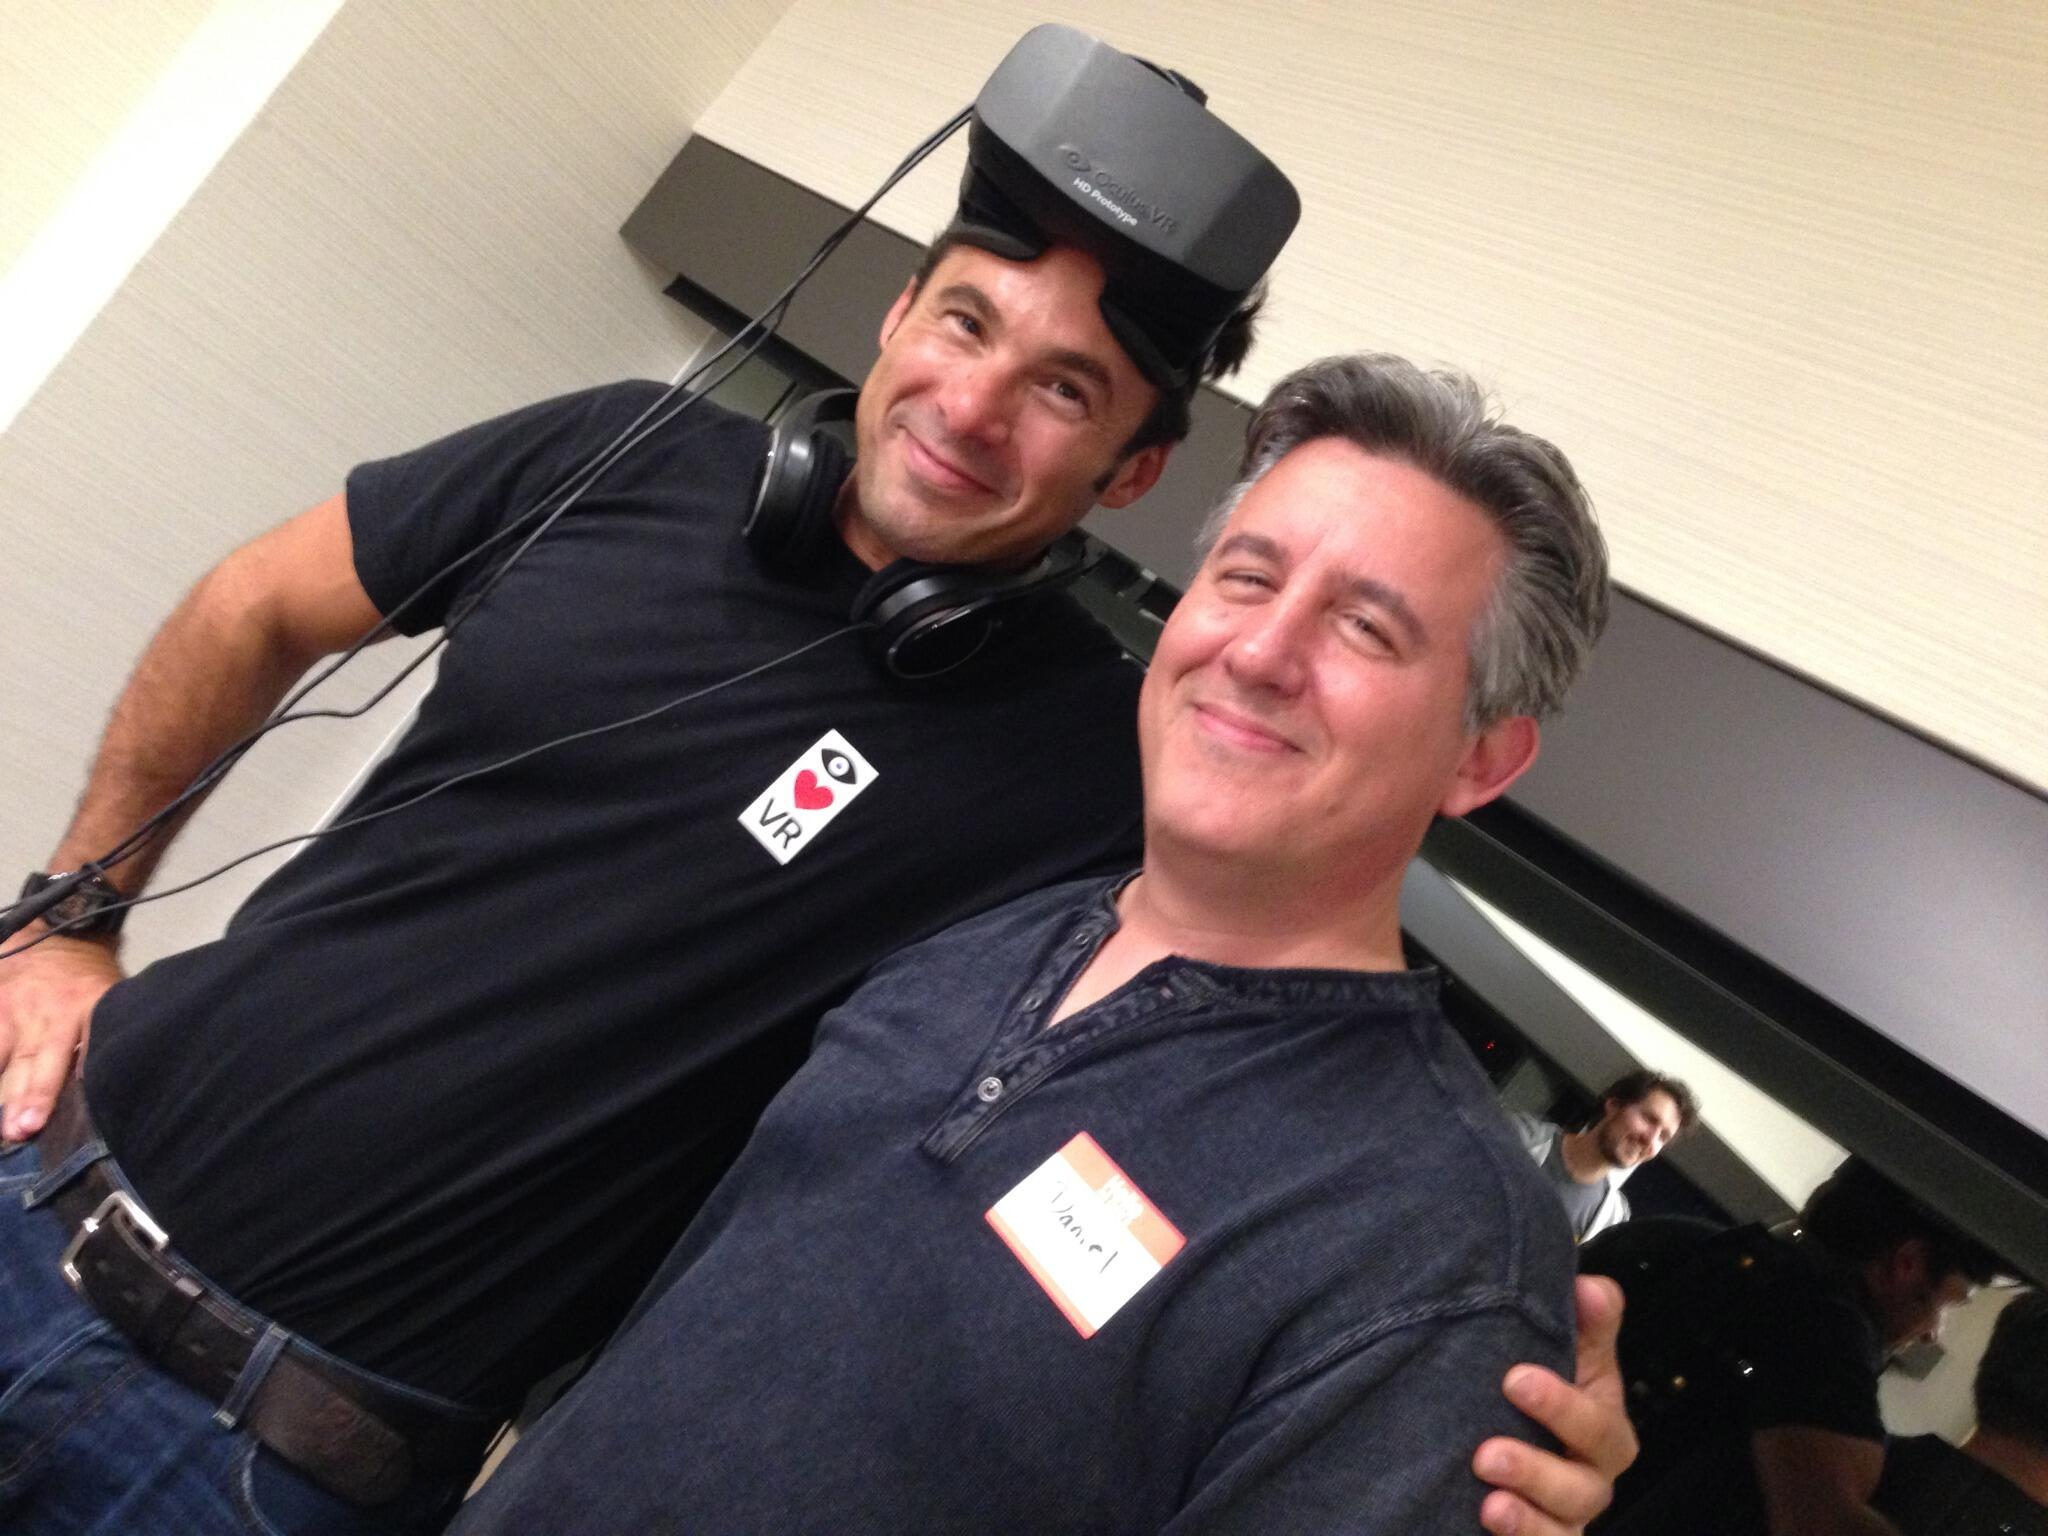 Twitter / BostonVC: Antonio with Occulus Rift - ...